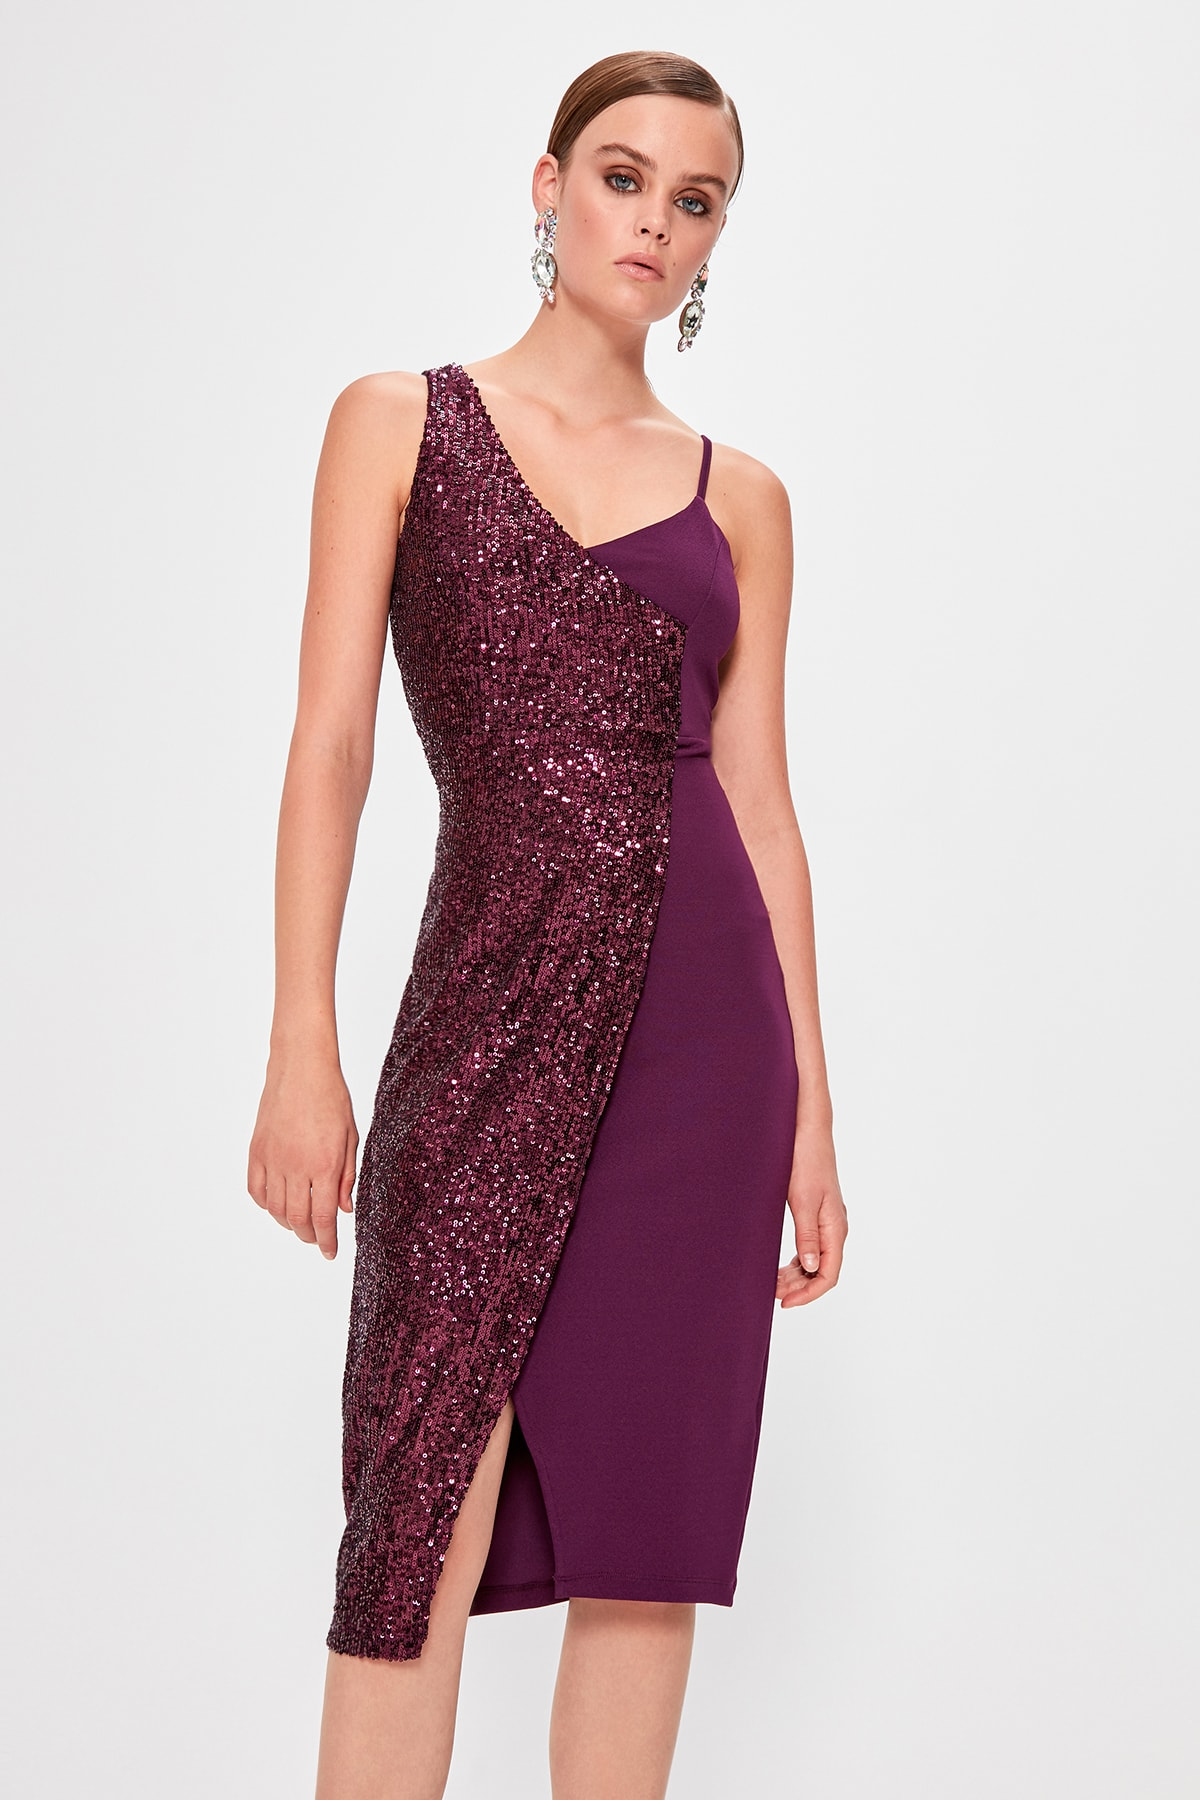 Trendyol Double Breasted Sequined Dress TPRSS19YL0007